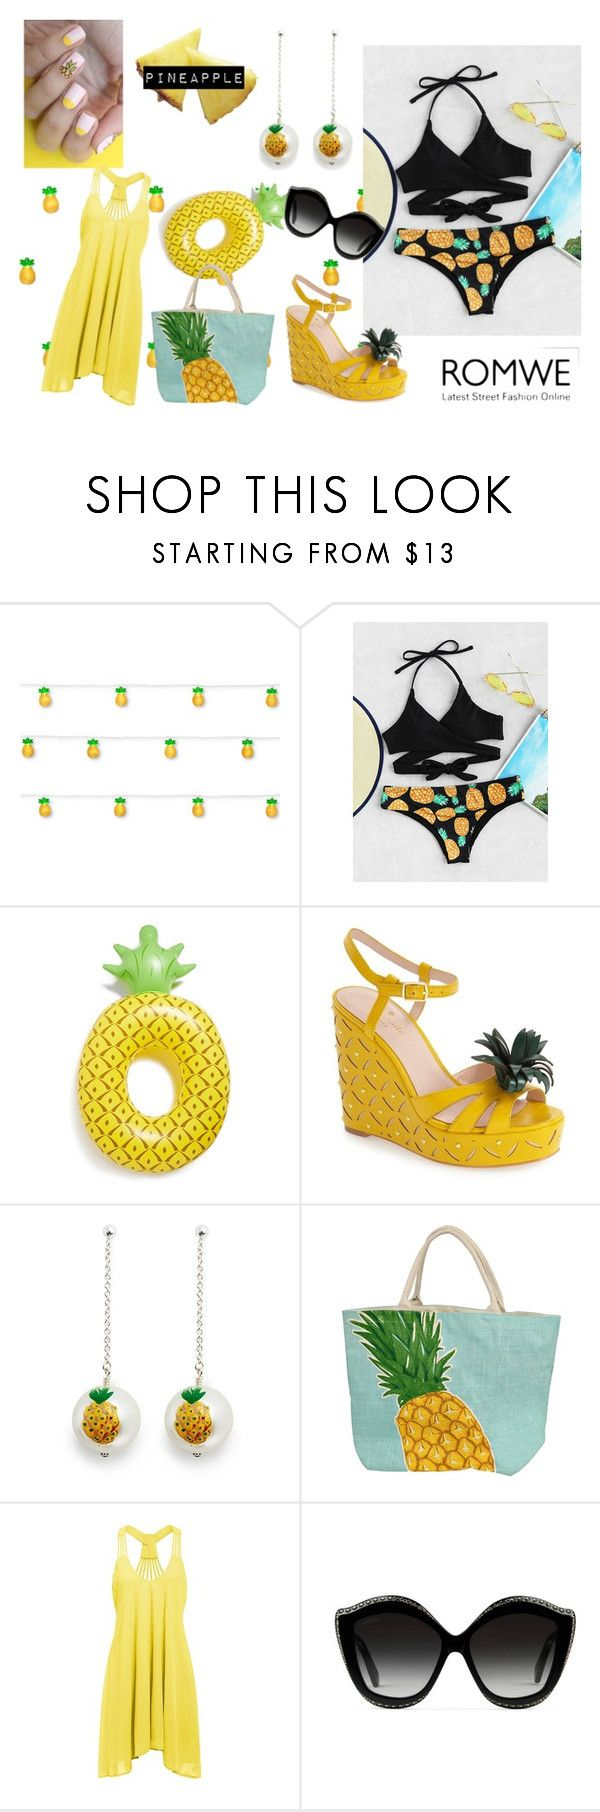 """""""PINEAPPLE"""" by emily-dickson-1 ❤ liked on Polyvore featuring Studio Mercantile, Big Mouth, Kate Spade, Venessa Arizaga and Gucci"""